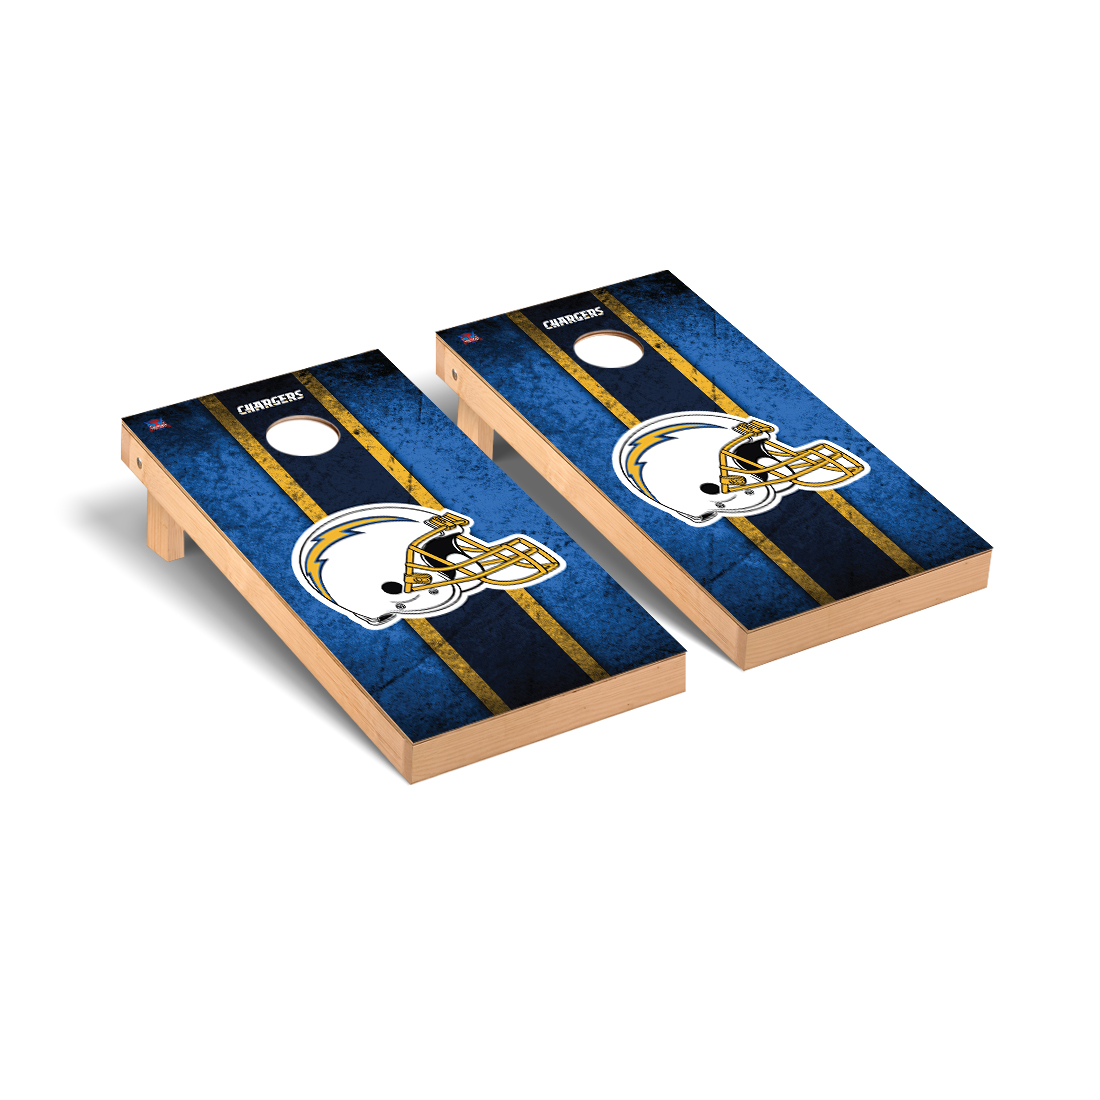 Los Angeles Chargers NFL Football Cornhole Game Set Vintage Version